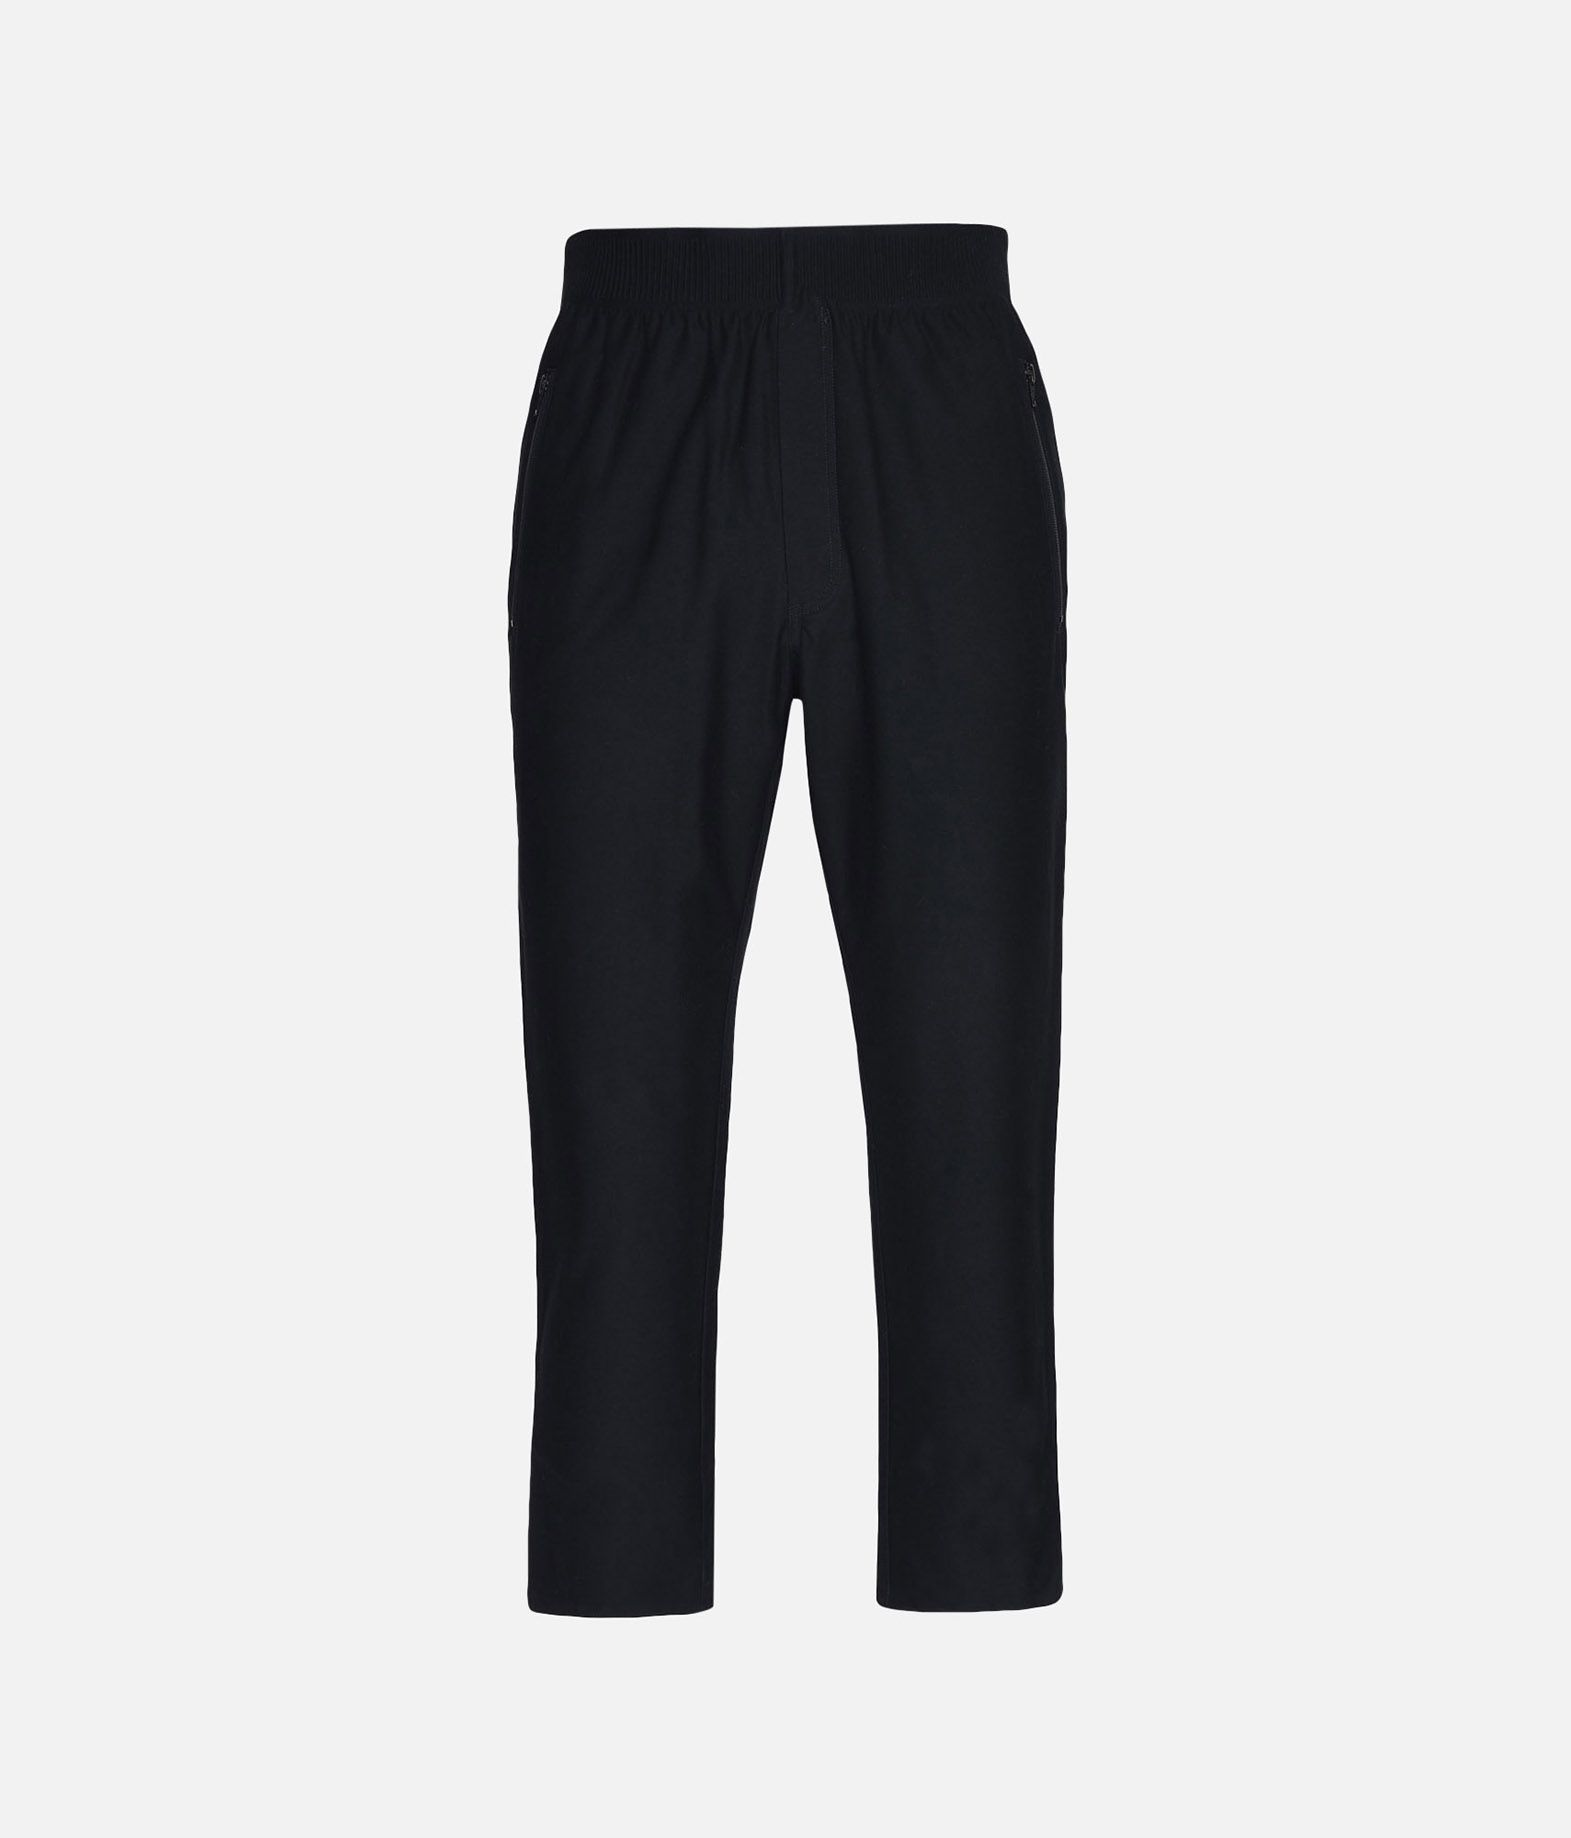 Y-3 Y-3 Twill Cropped Pants Pantalon Homme f